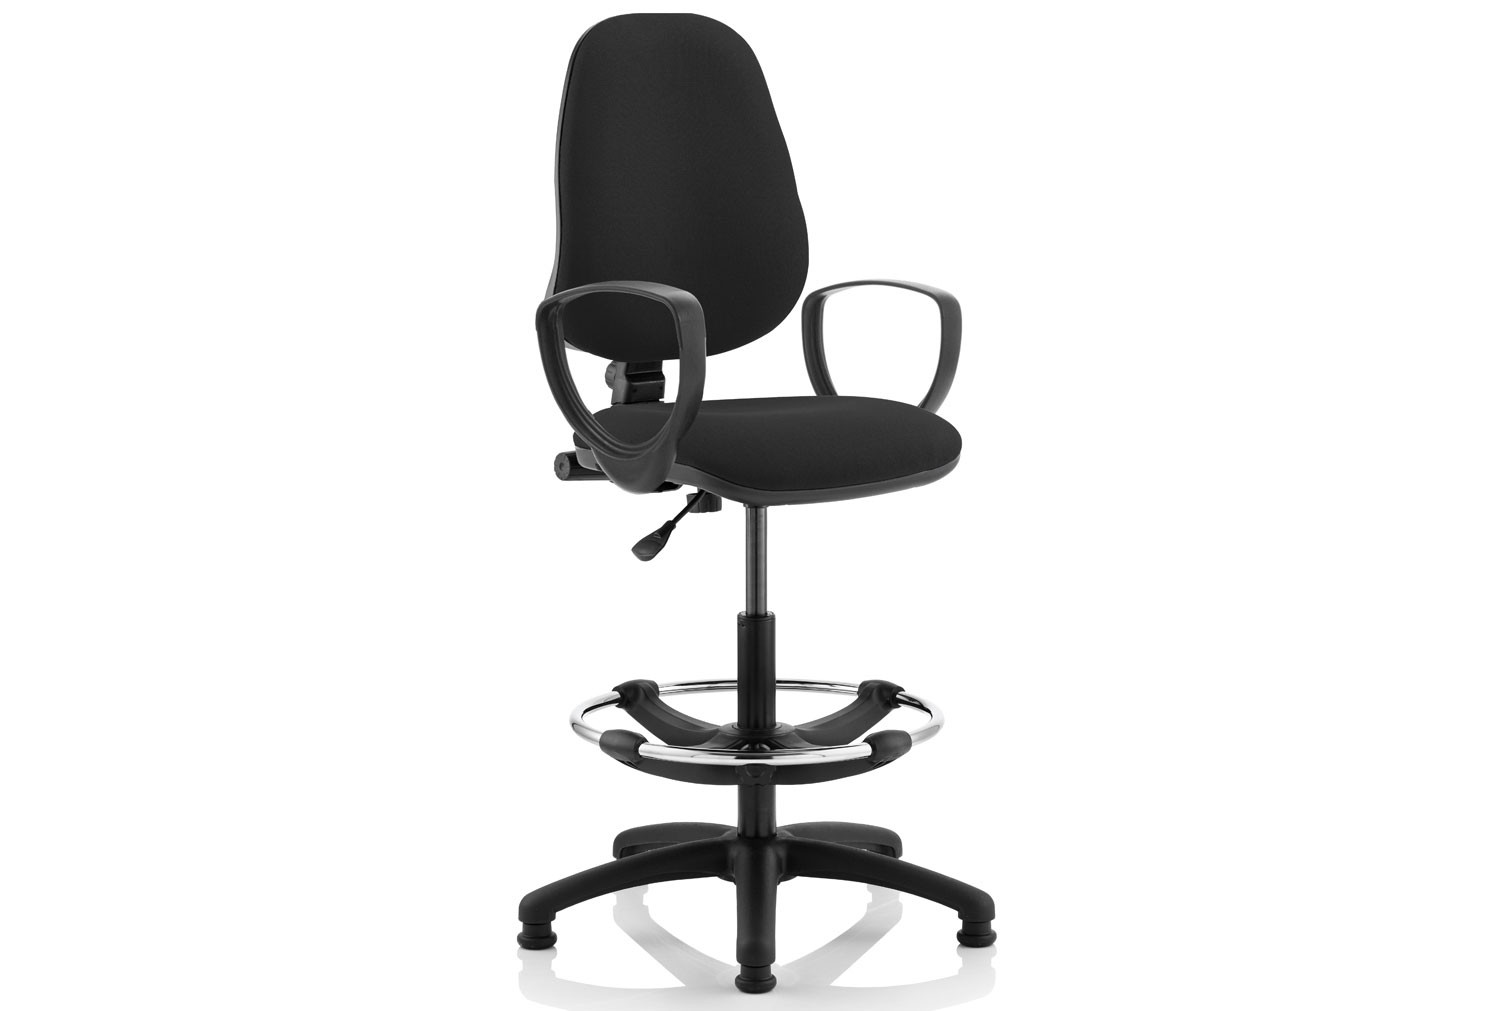 Lunar 1 Lever Draughtsman Chair (Fixed Arms)